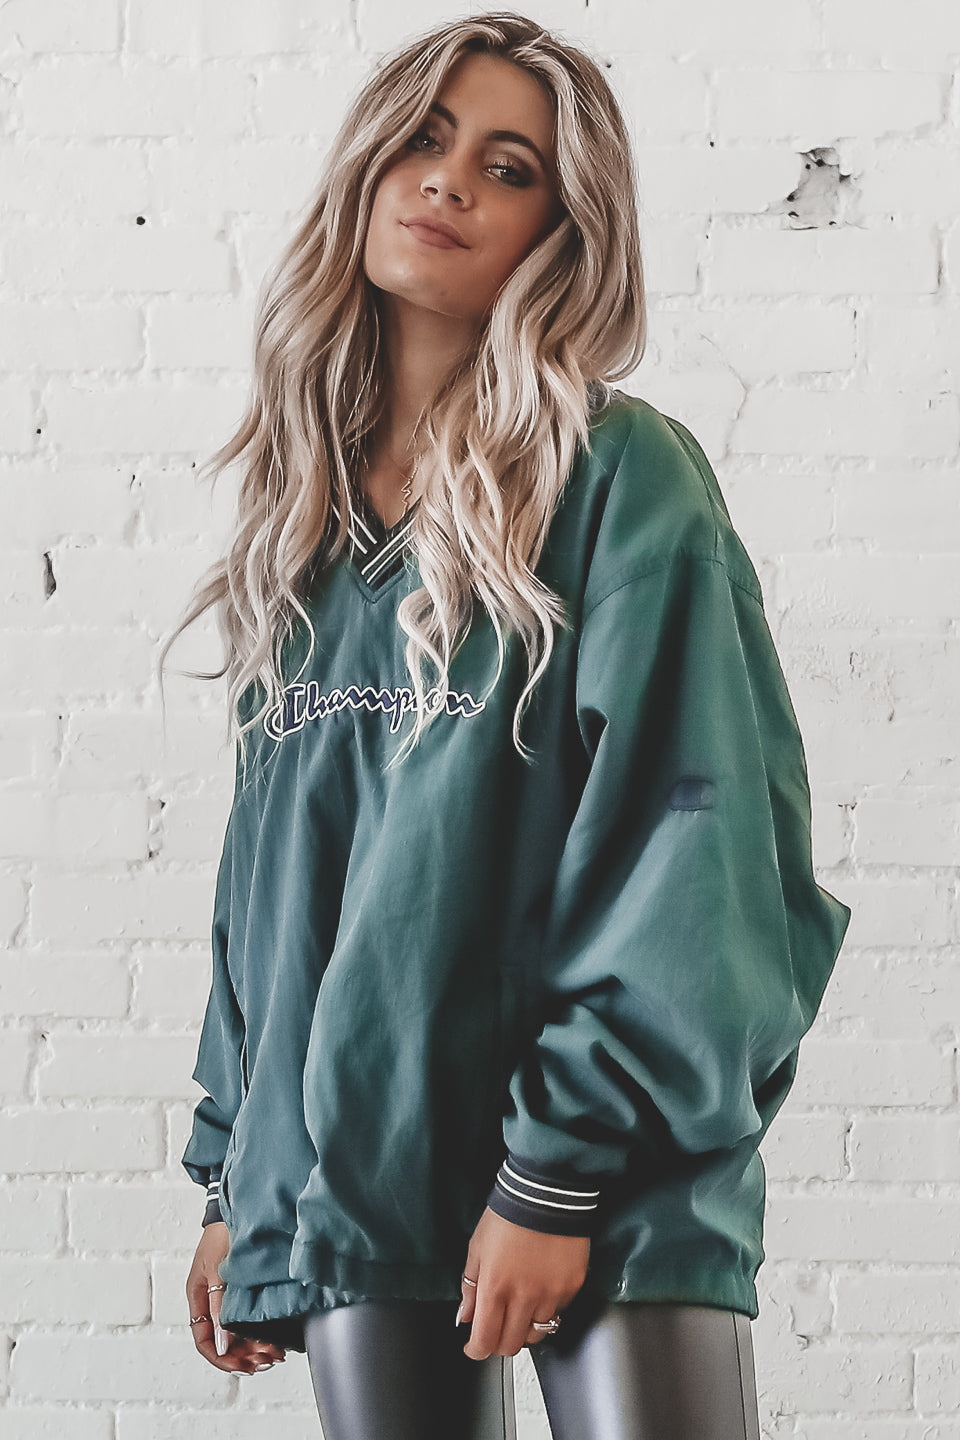 VINTAGE 90s Green & White Champion Windbreaker 259